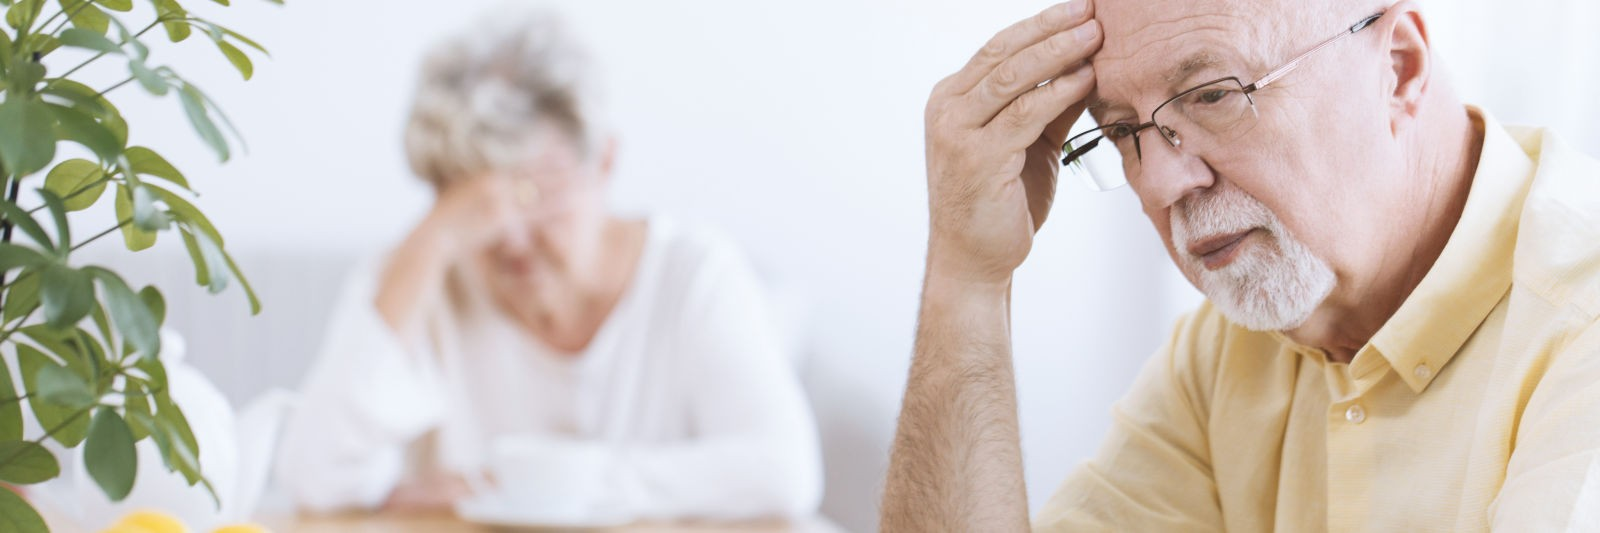 Mental Health Counseling and Psychotherapy | Suwanee, GA | Marriage problems can happen at any age